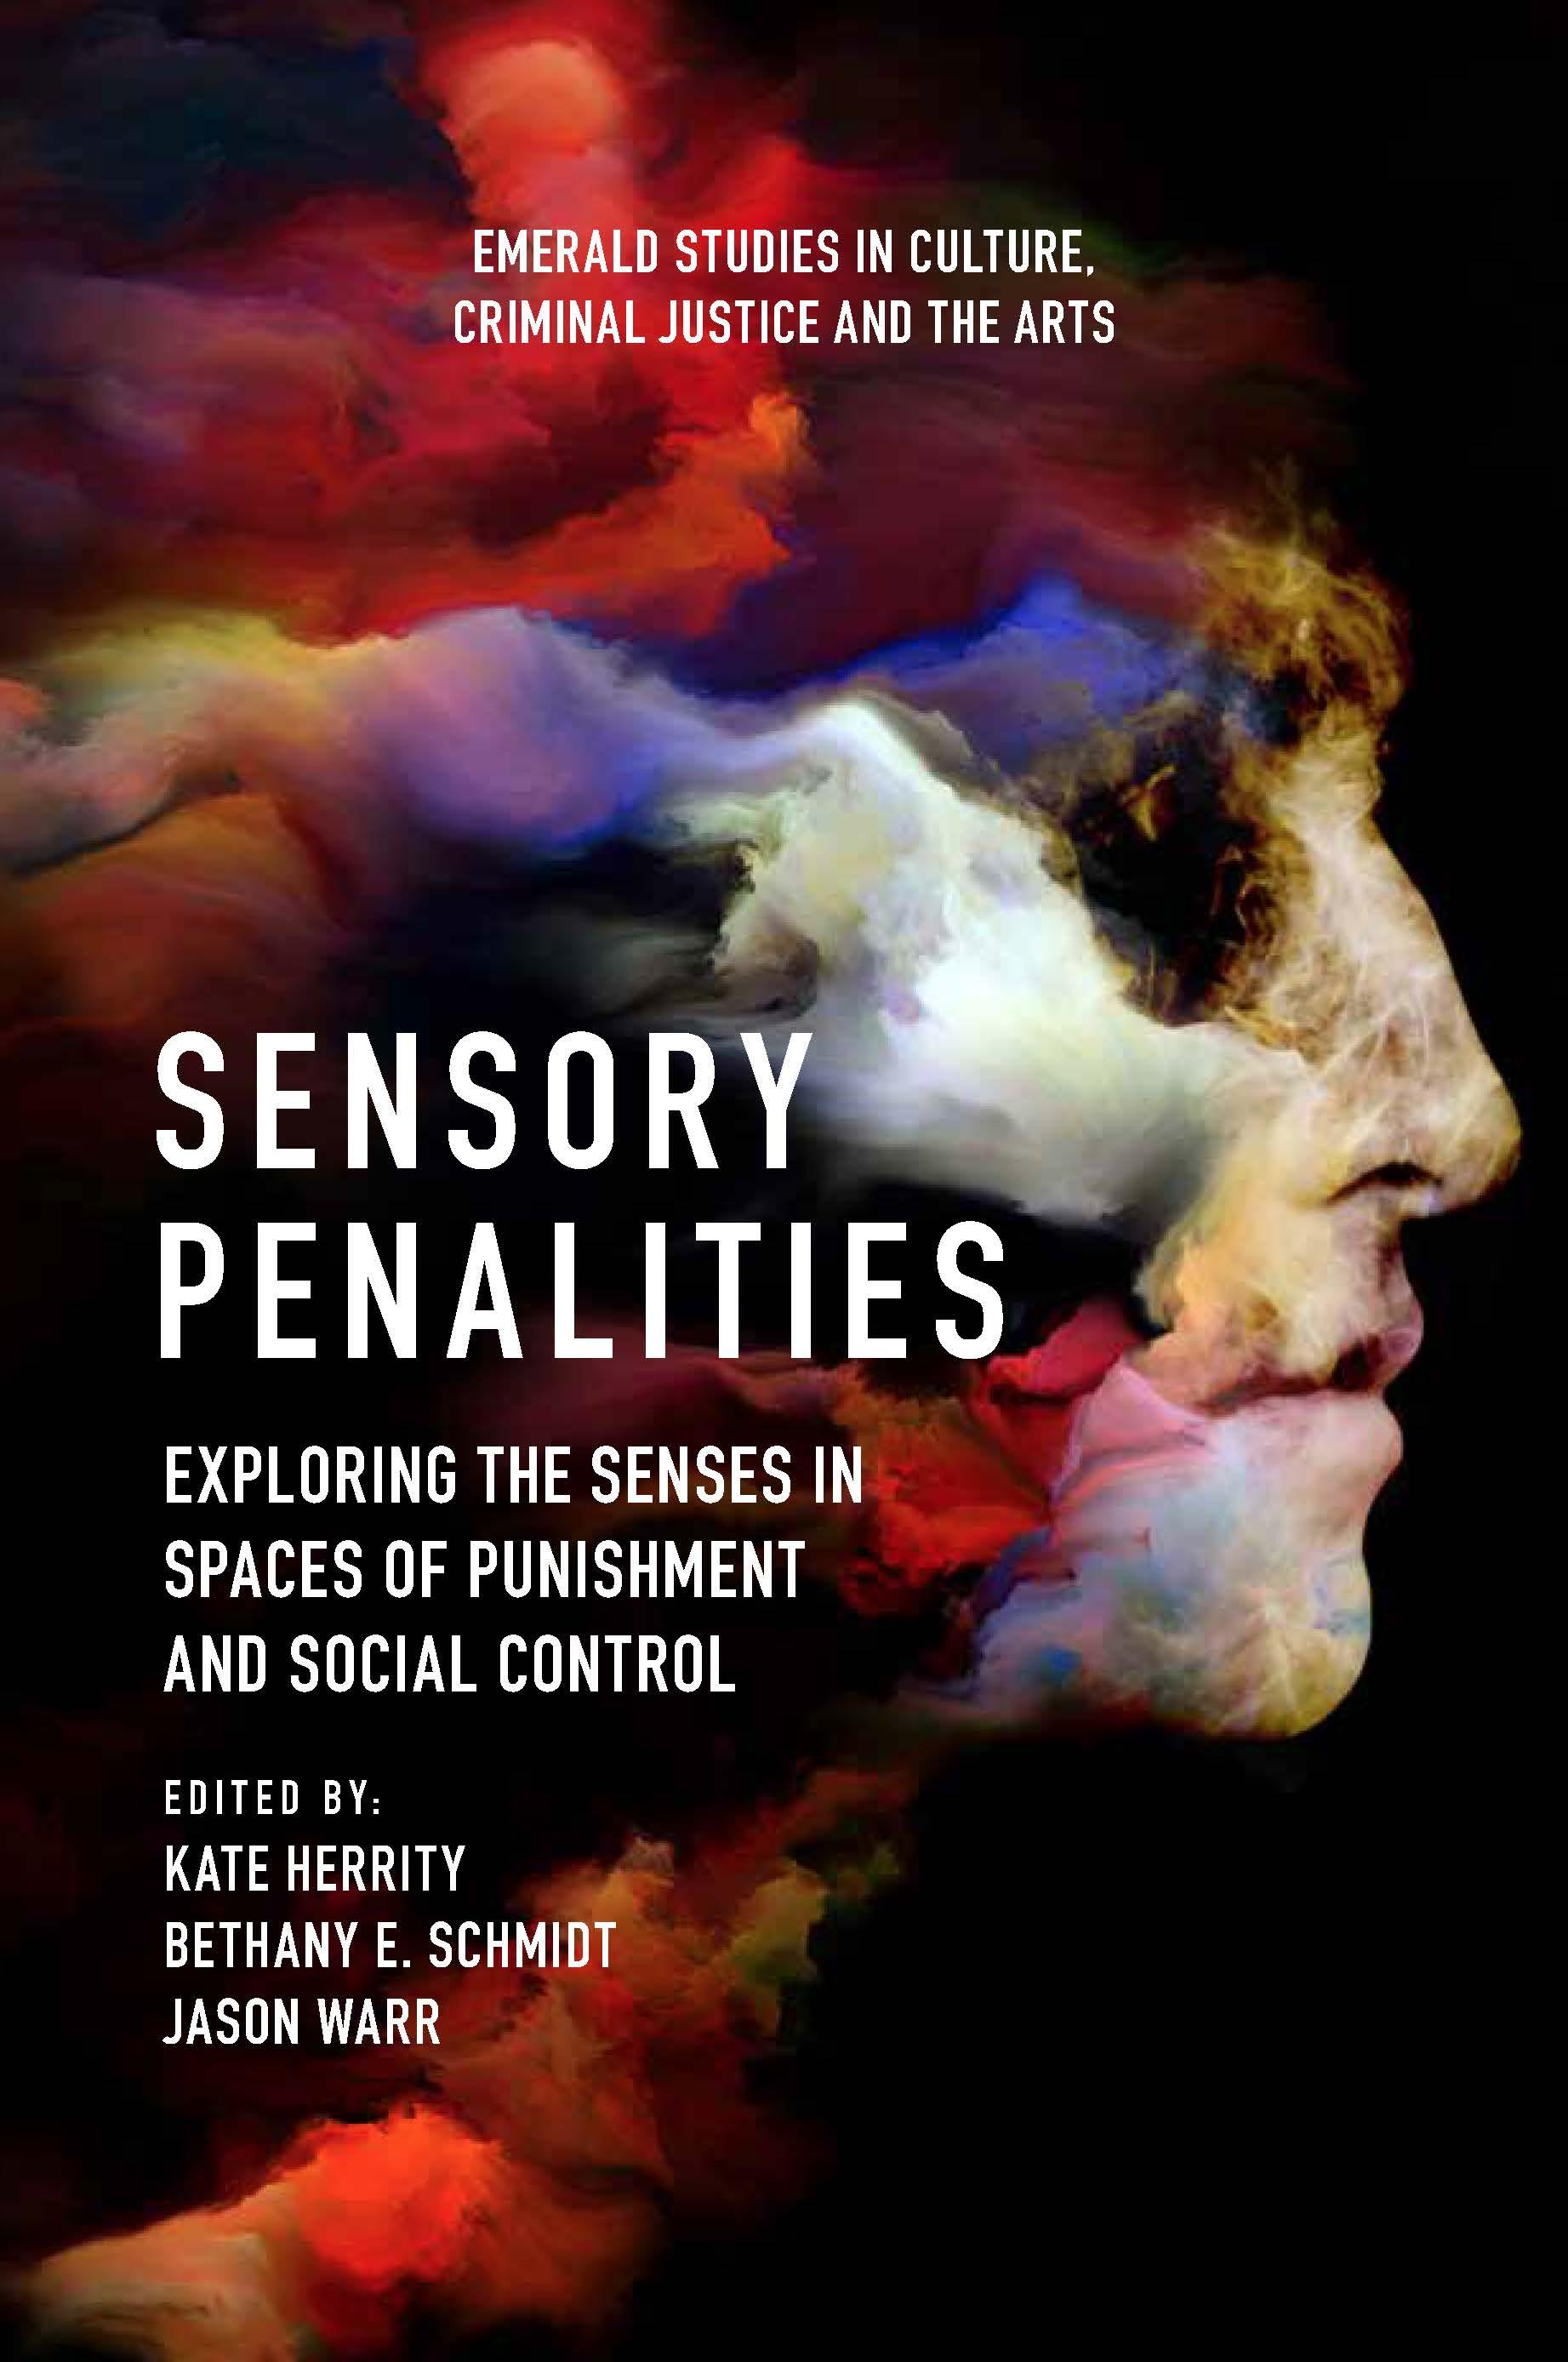 Virtual Book Launch: Sensory Penalities: Exploring the Senses in Spaces of Punishment and Social Control (Friday 12 February)